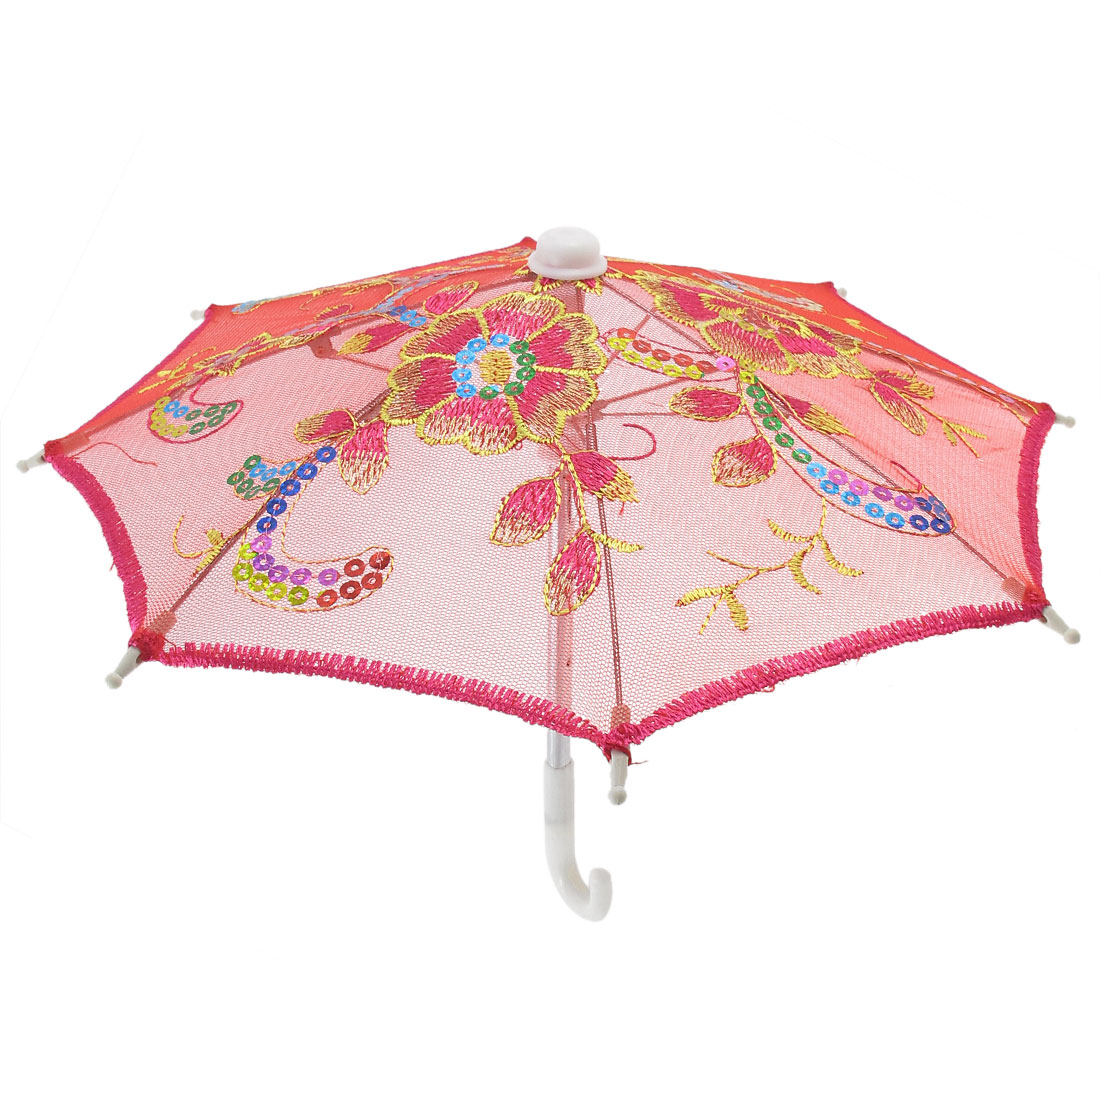 Red Embroider Flower Pattern Foldable Child Mini Lace Umbrella Parasol